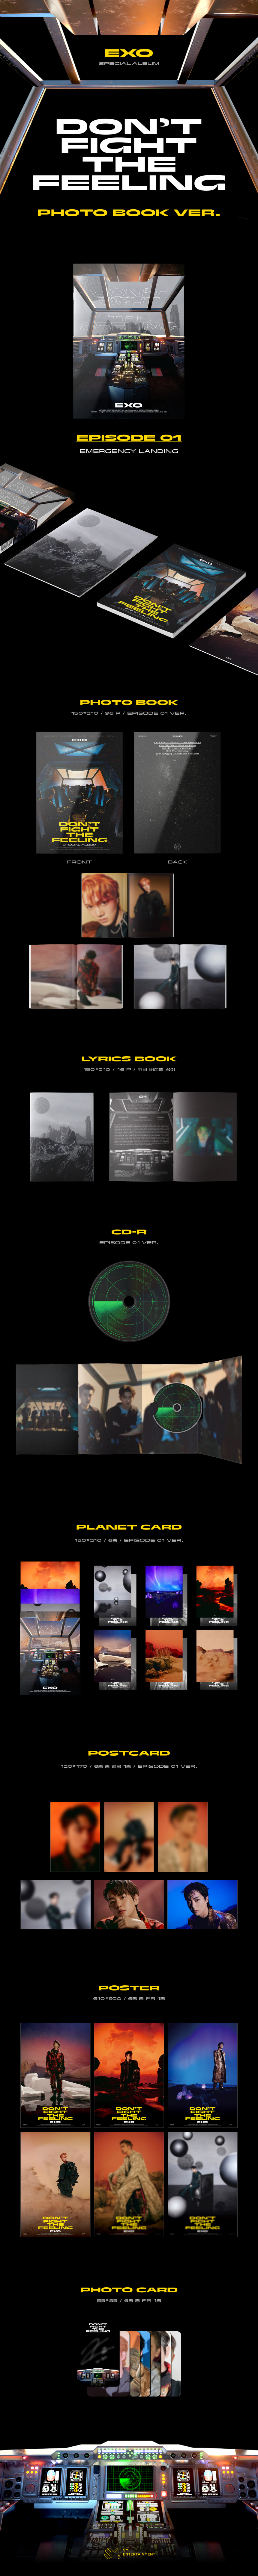 exo-dont-fight-the-feeling-ver-1-detail-kpop-malaysia.jpg